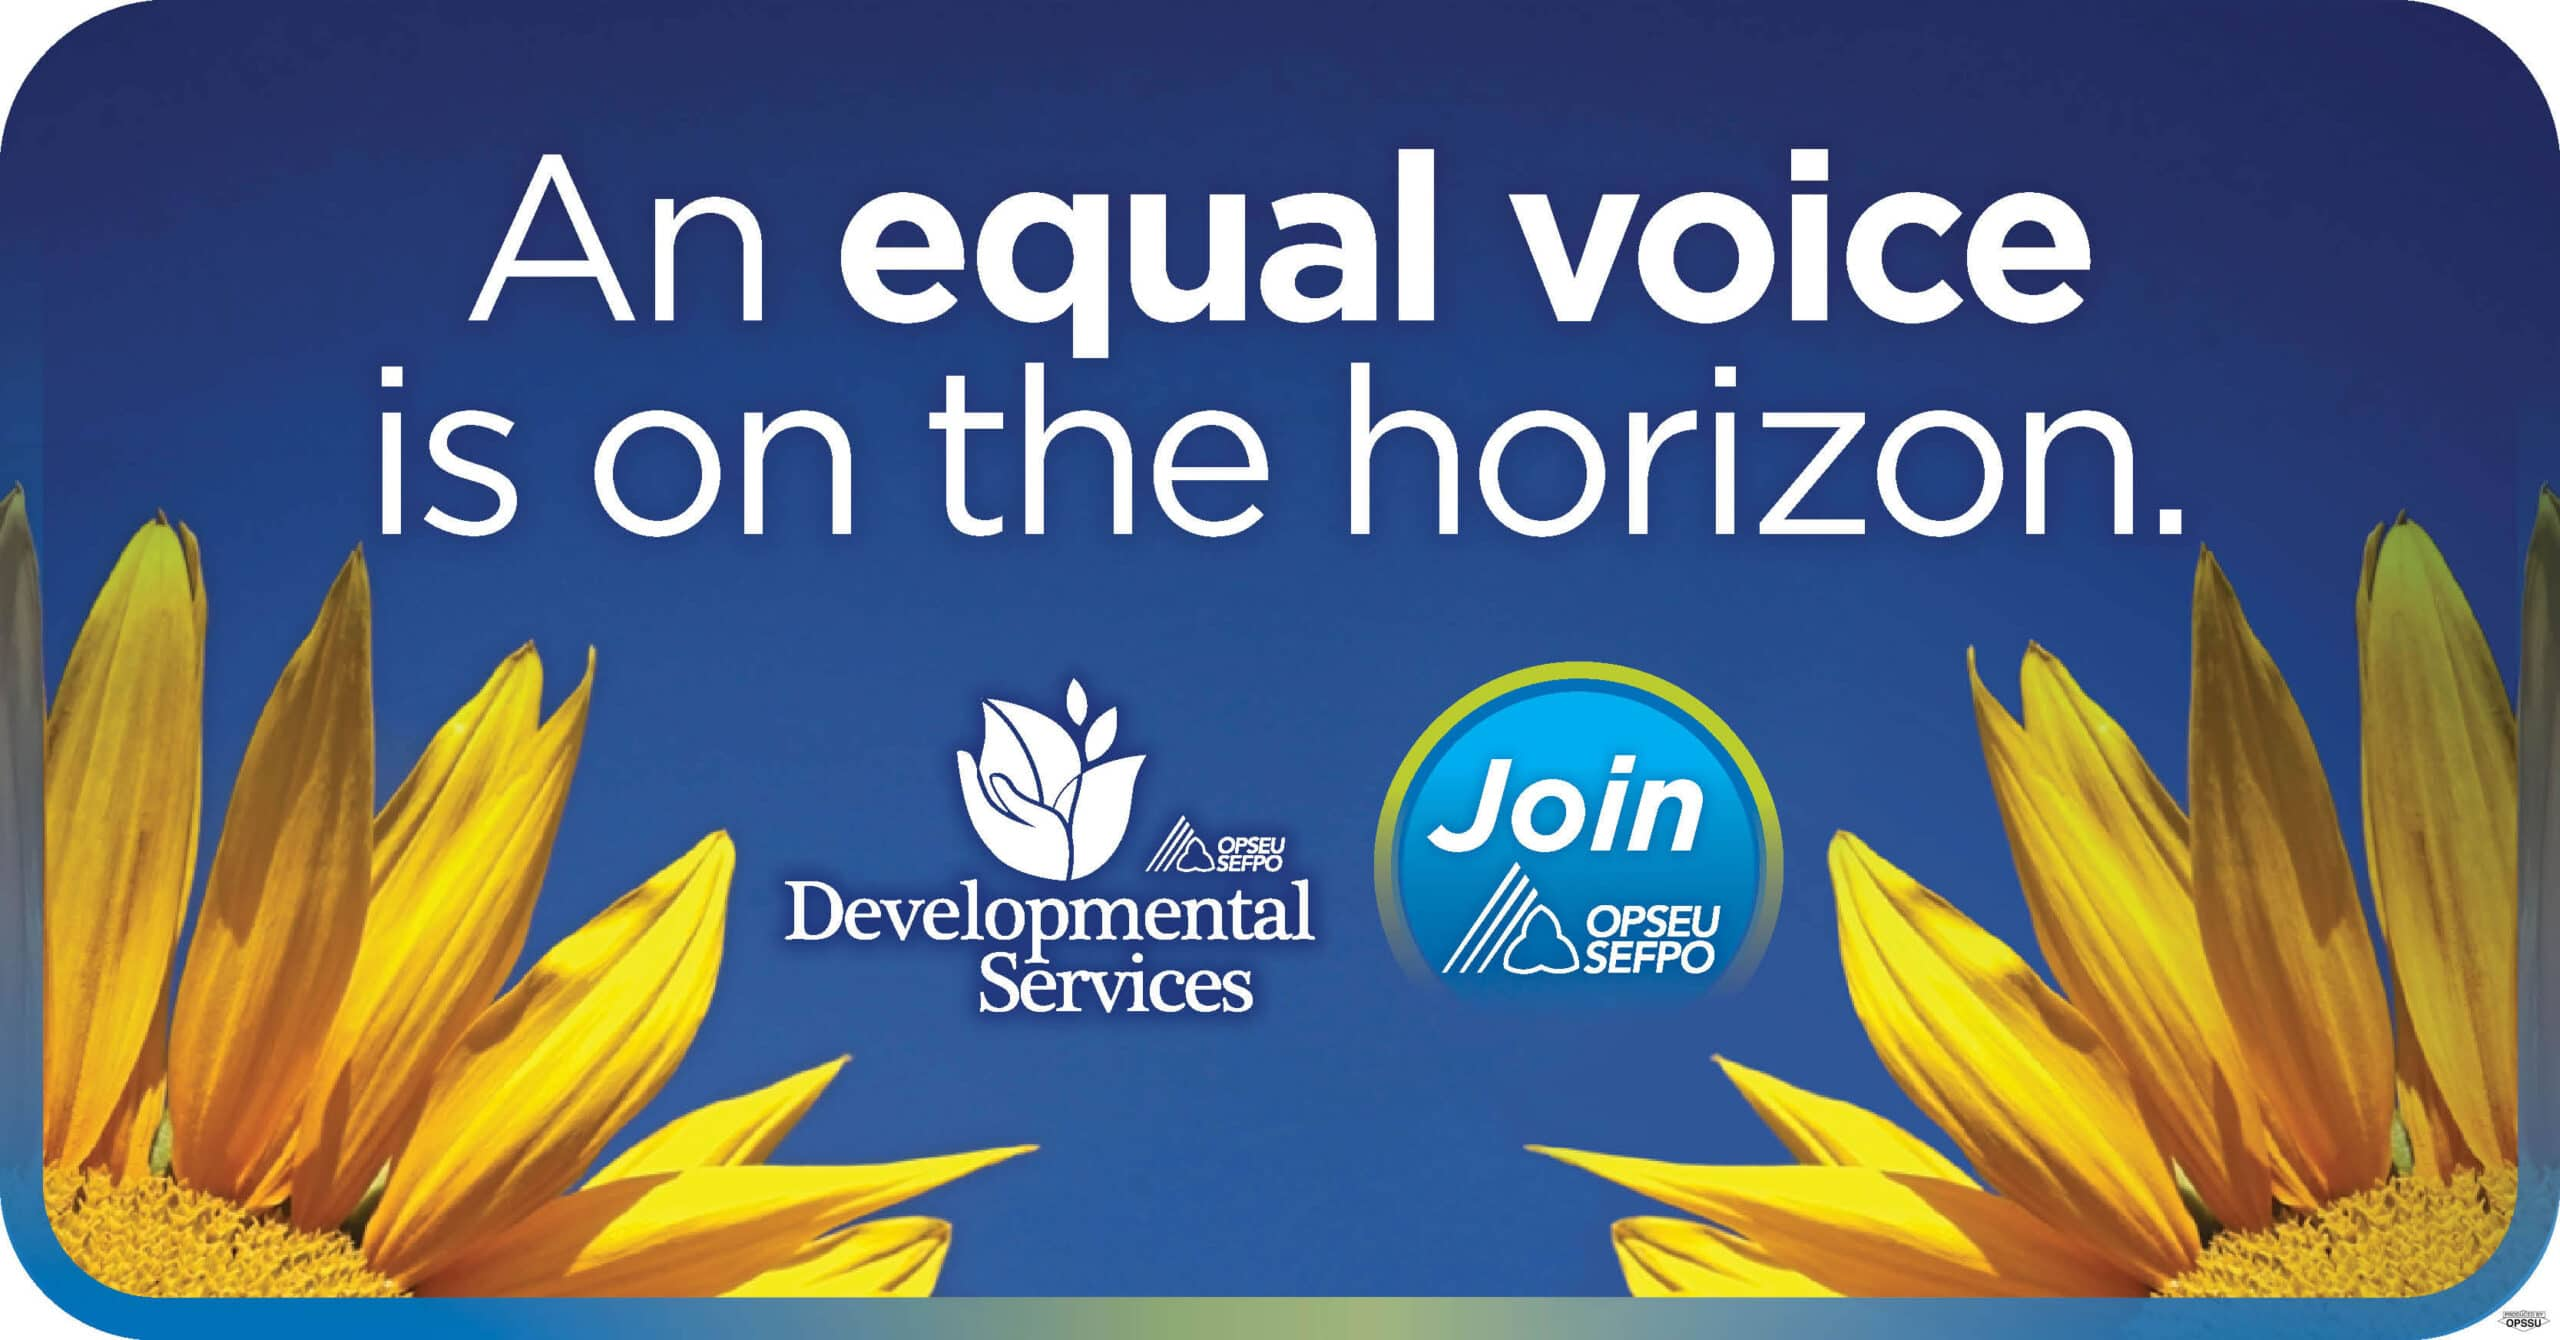 Developmental Services: An equal voice is on the horizon